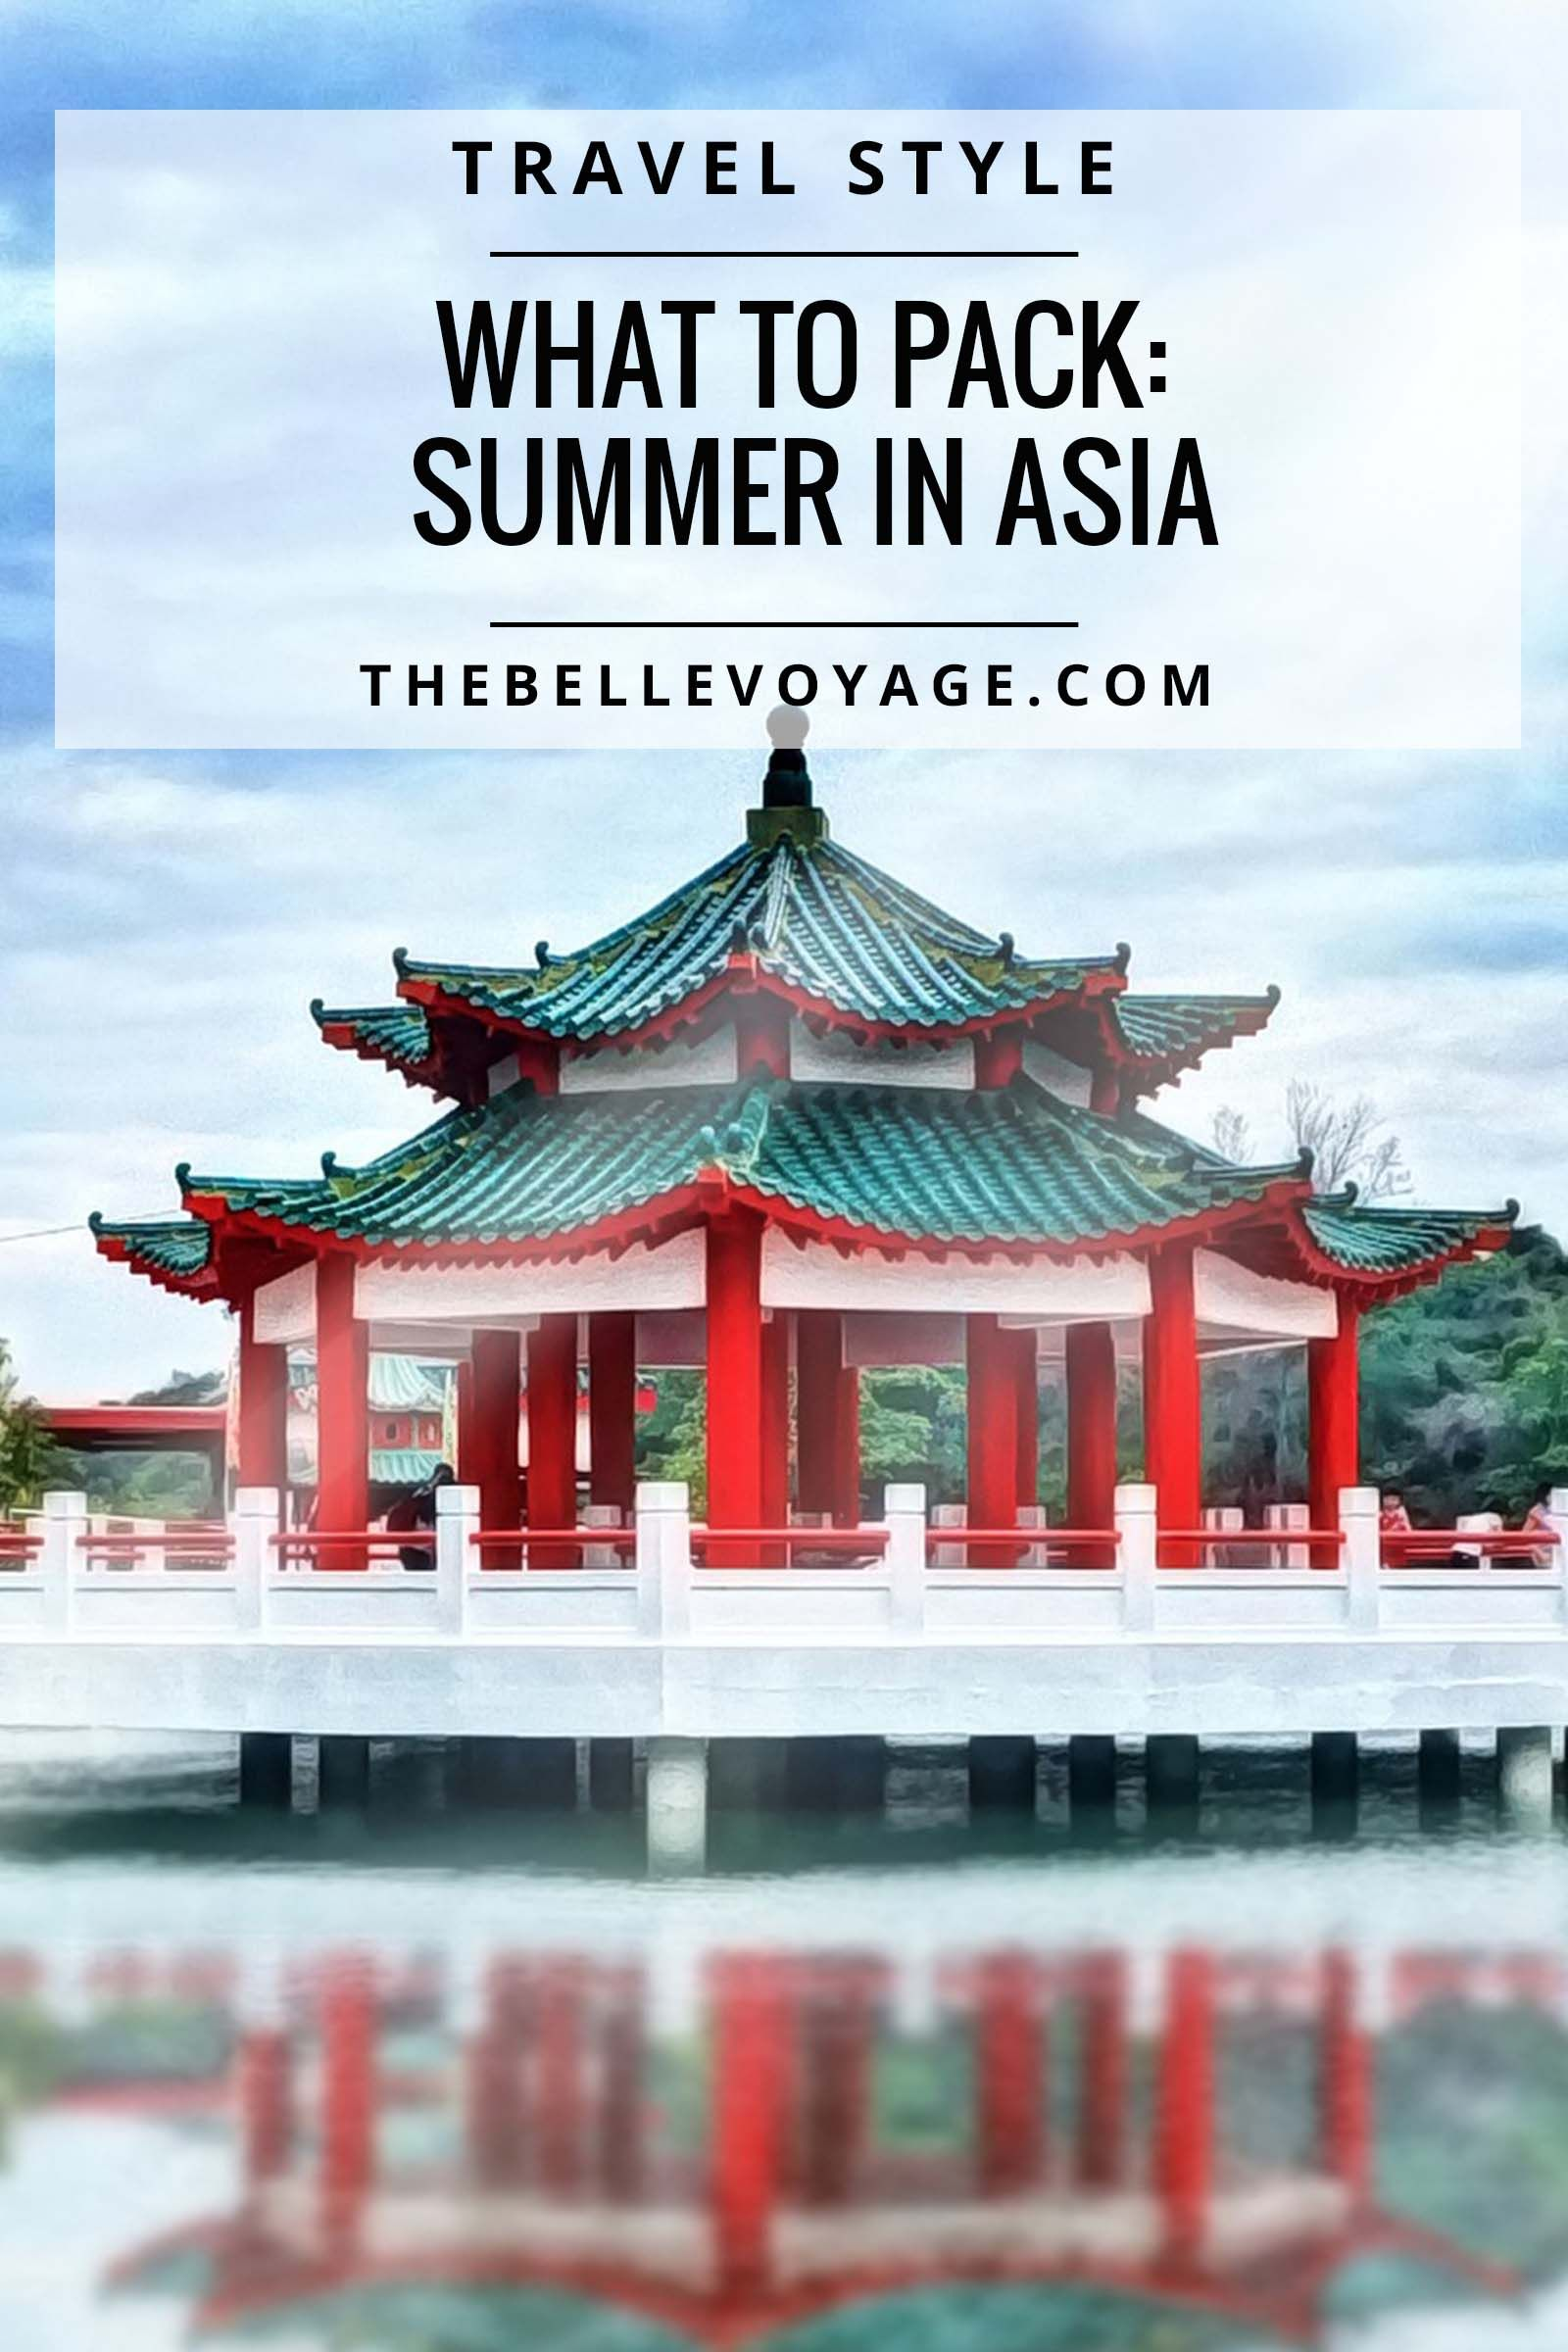 What To Pack For Asia In July With Images Packing List For Travel Summer Packing Lists What To Pack